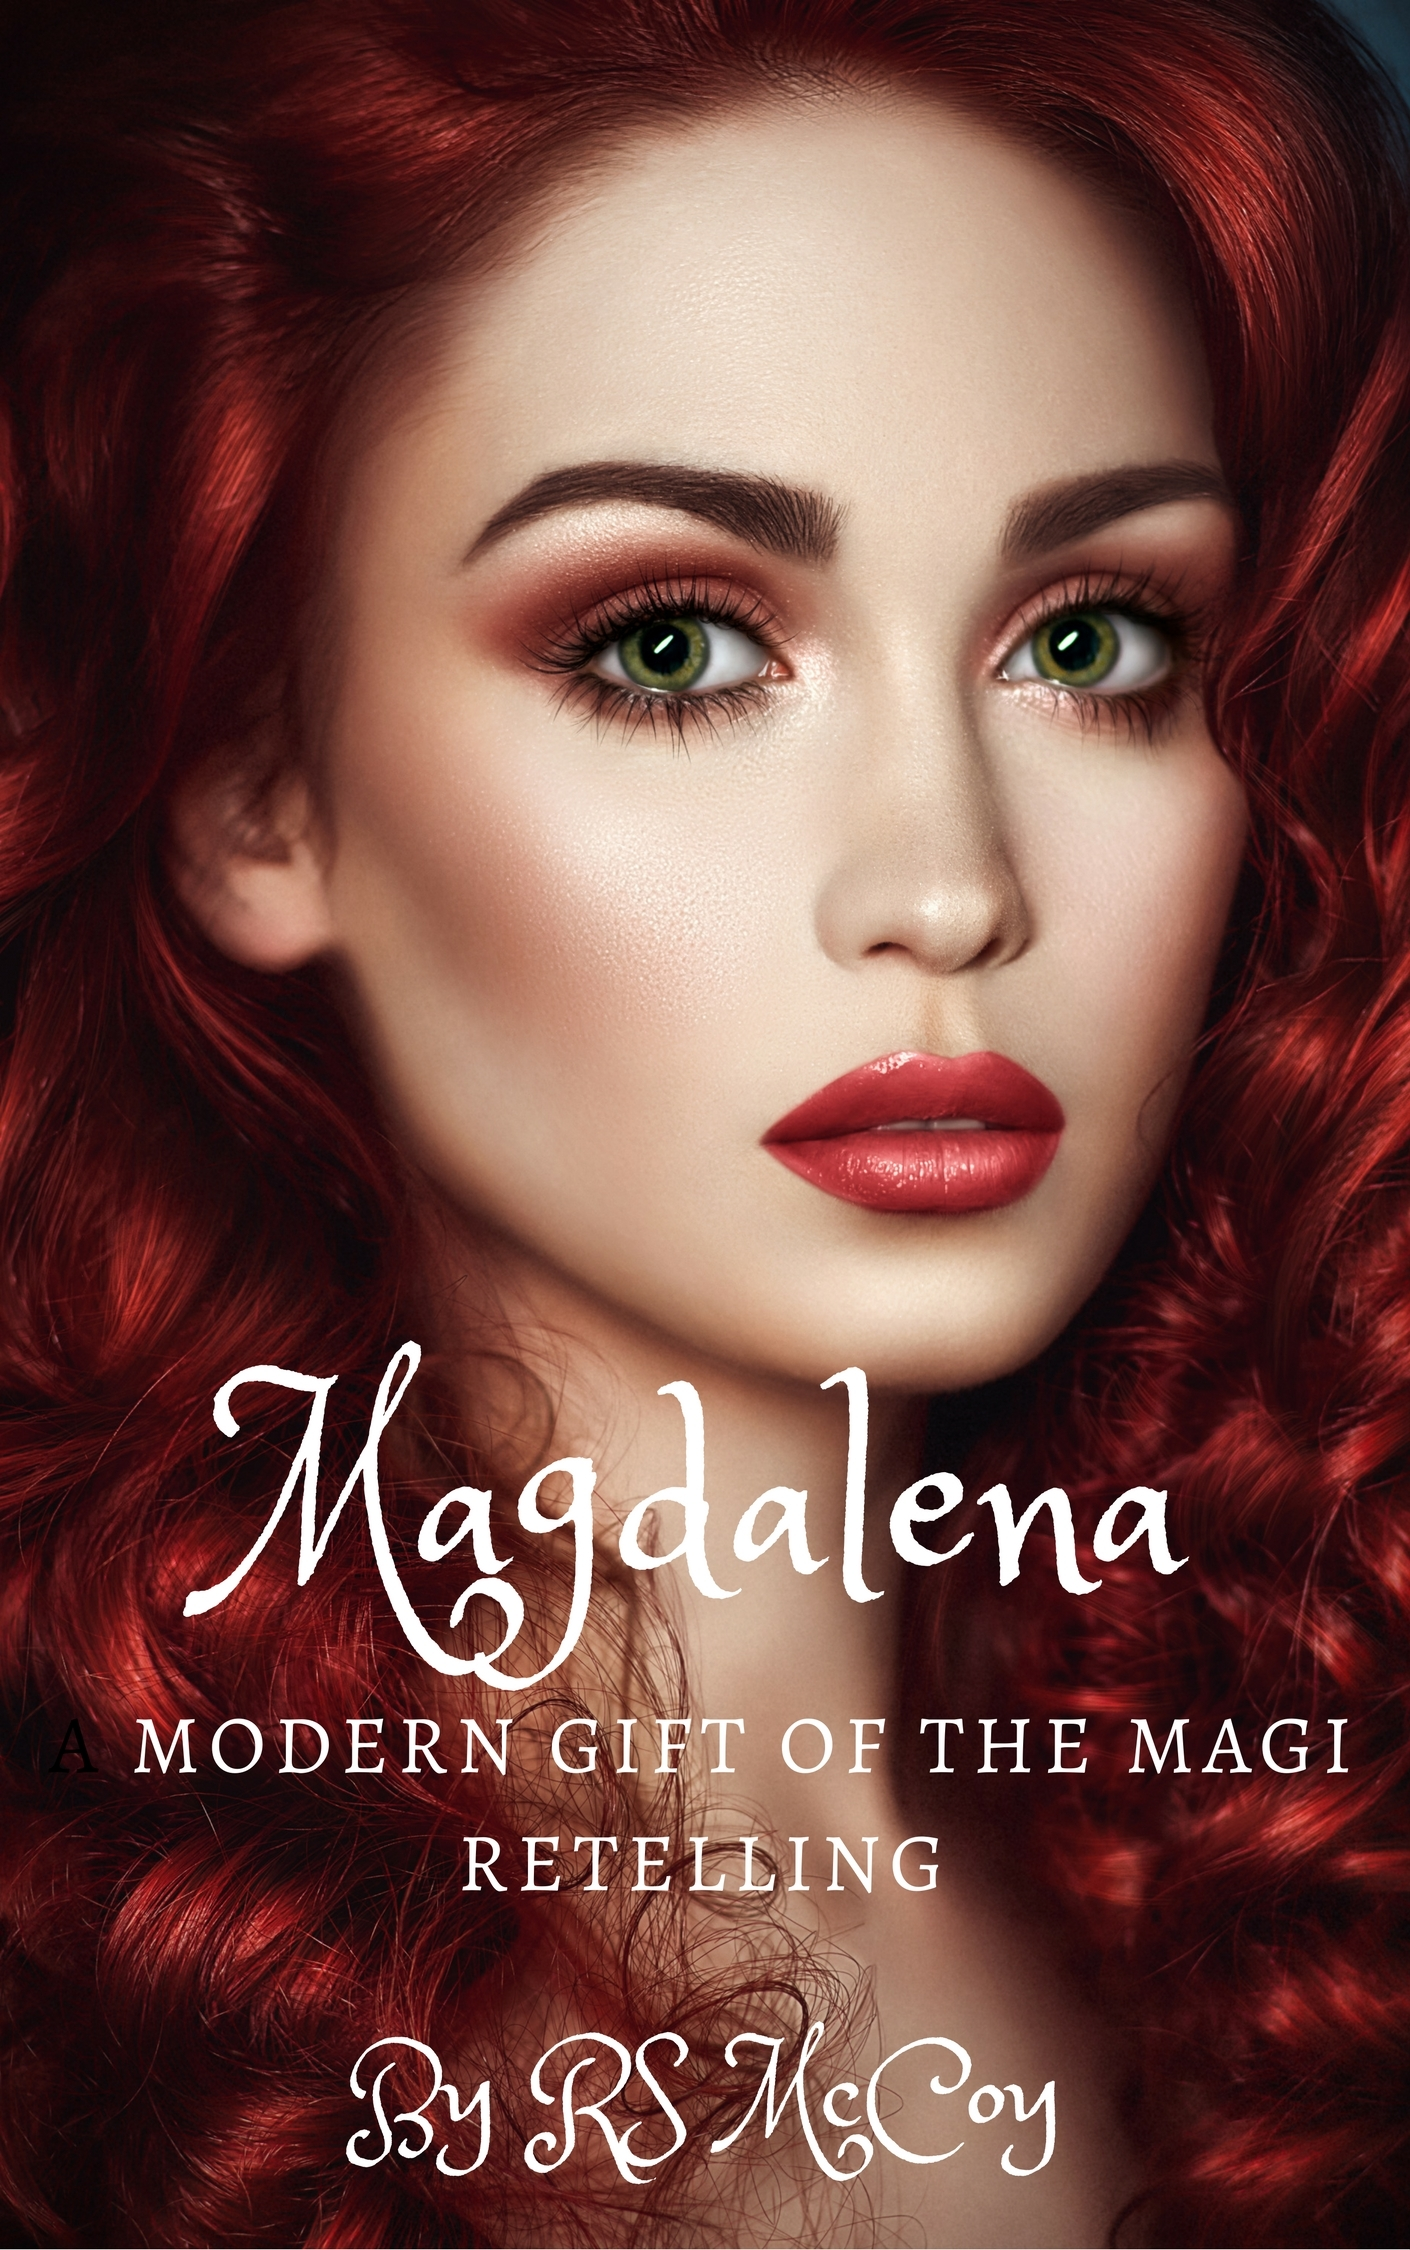 Magdalena: A Gift of the Magi Retelling